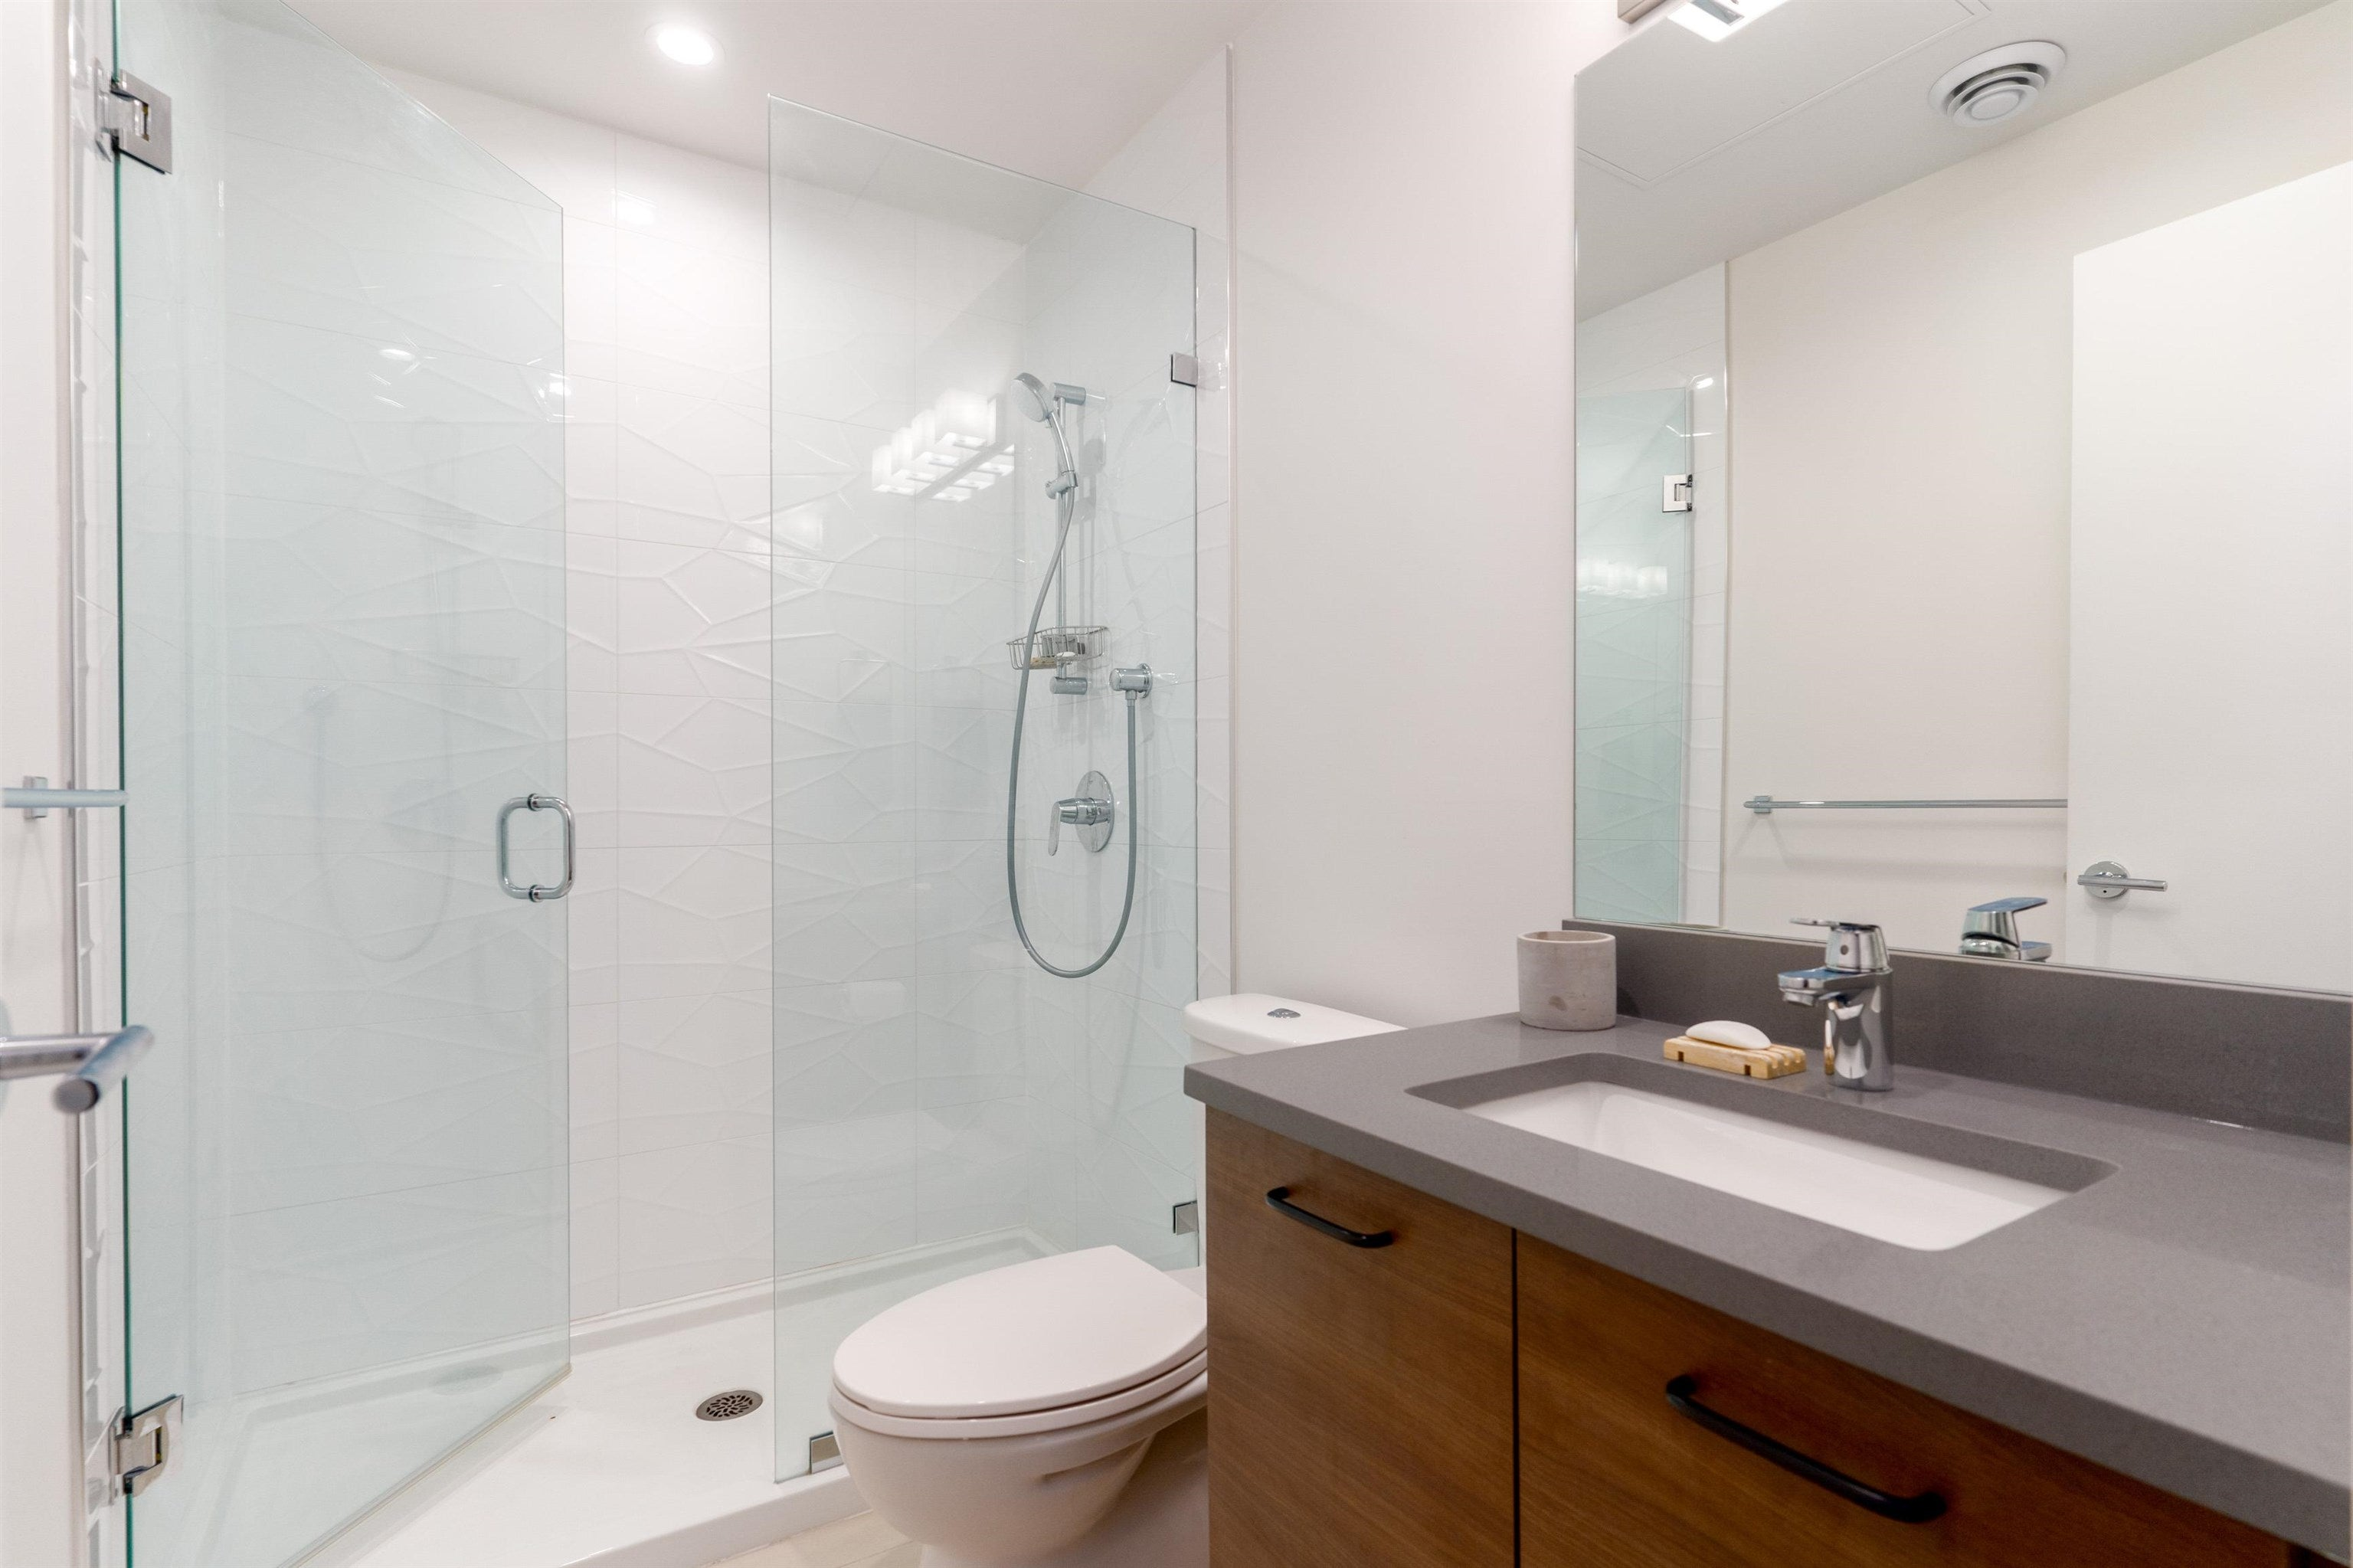 102 1519 CROWN STREET - Lynnmour Apartment/Condo for sale, 3 Bedrooms (R2625295) - #15